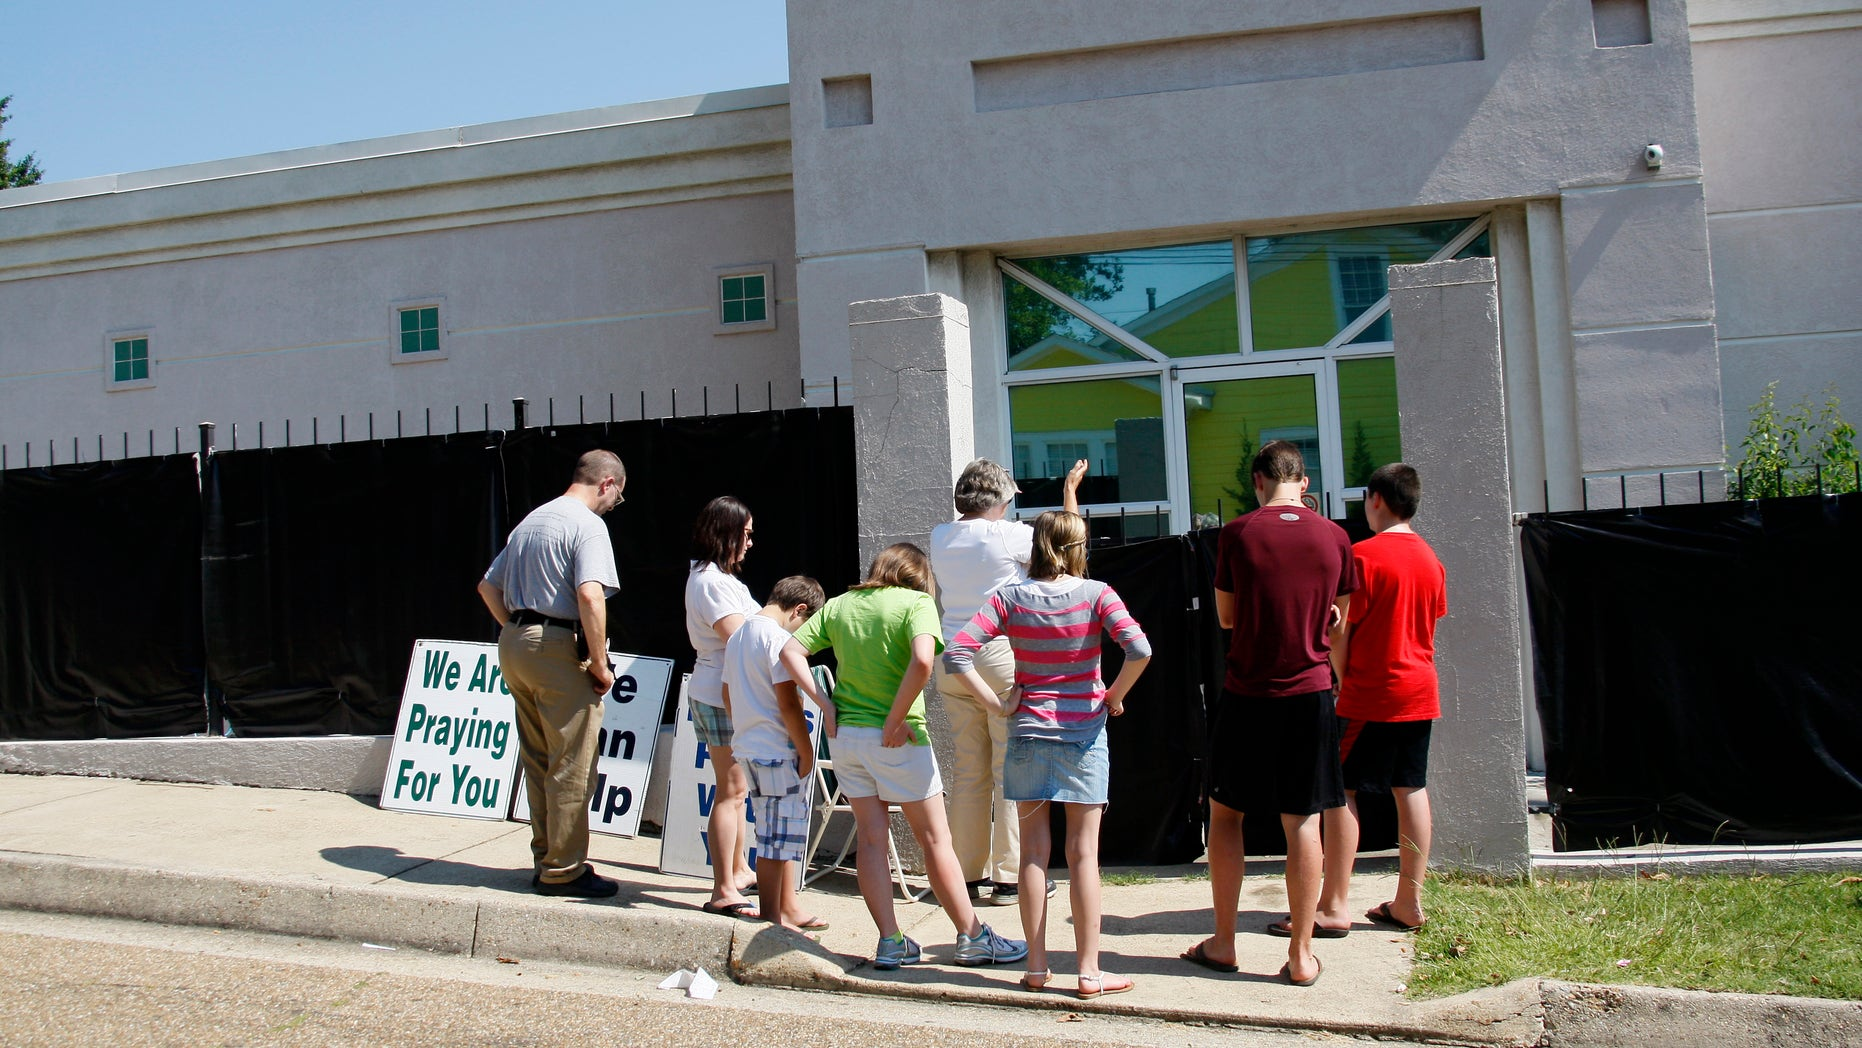 "June 27, 2012: In this photograph, anti-abortion advocates stand outside Mississippi's only abortion clinic, singing and praying for their patients, and ""counseling"" them to reject abortion."